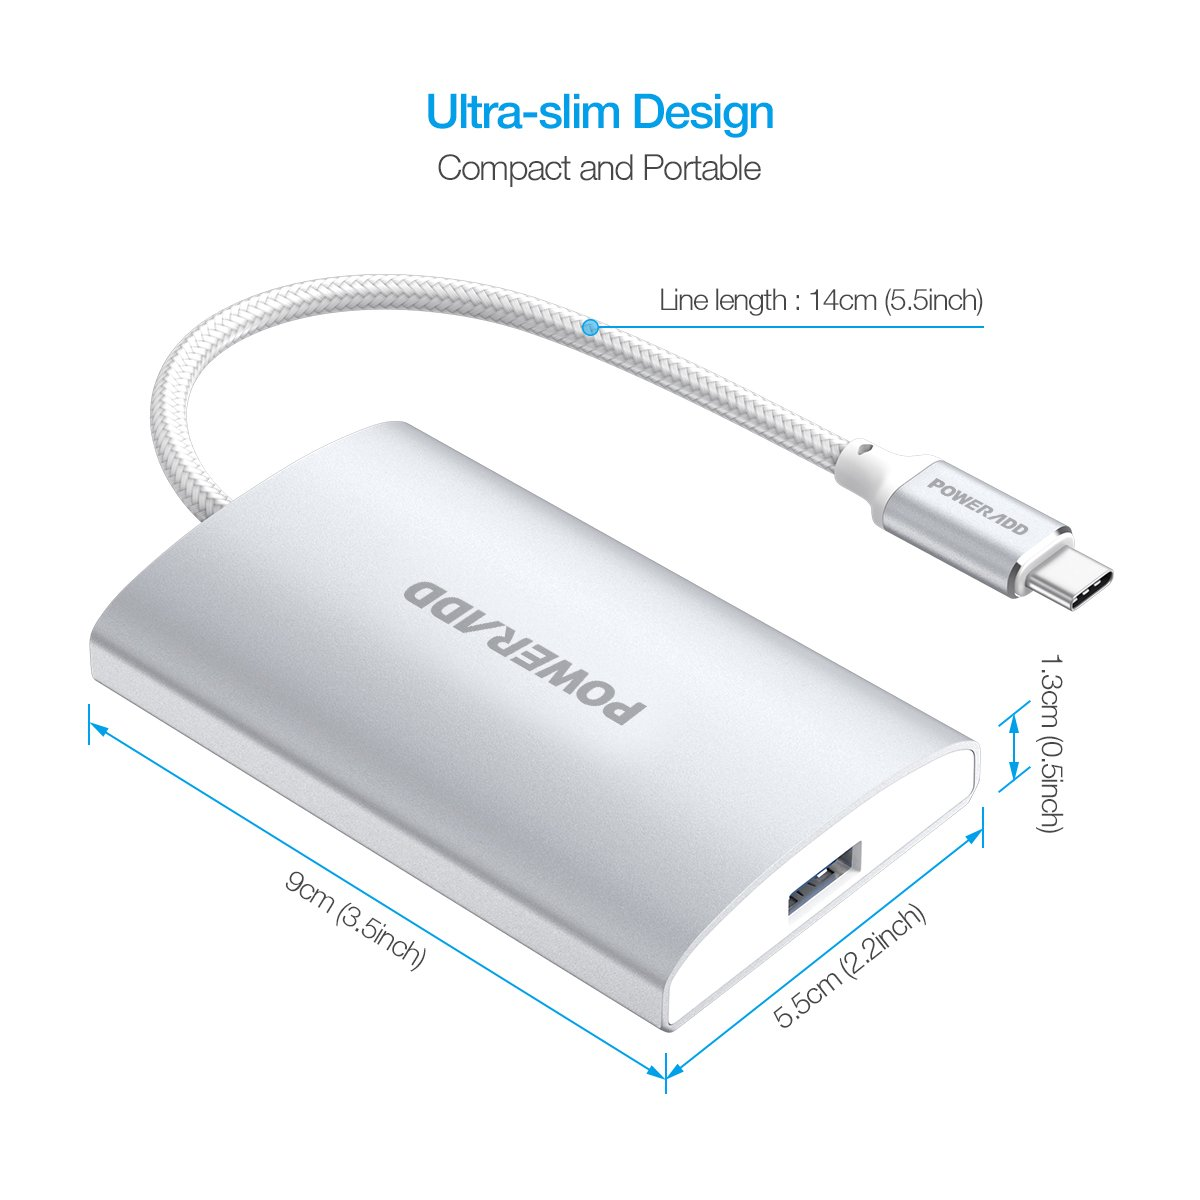 USB C Hub, Poweradd USB C Adapter 3.0 with USB C Power Delivery Port, 4-Port Aluminum Type C Hub High Transfer Speed for Mac, PC, USB Flash Drives and Other Devices - Silver